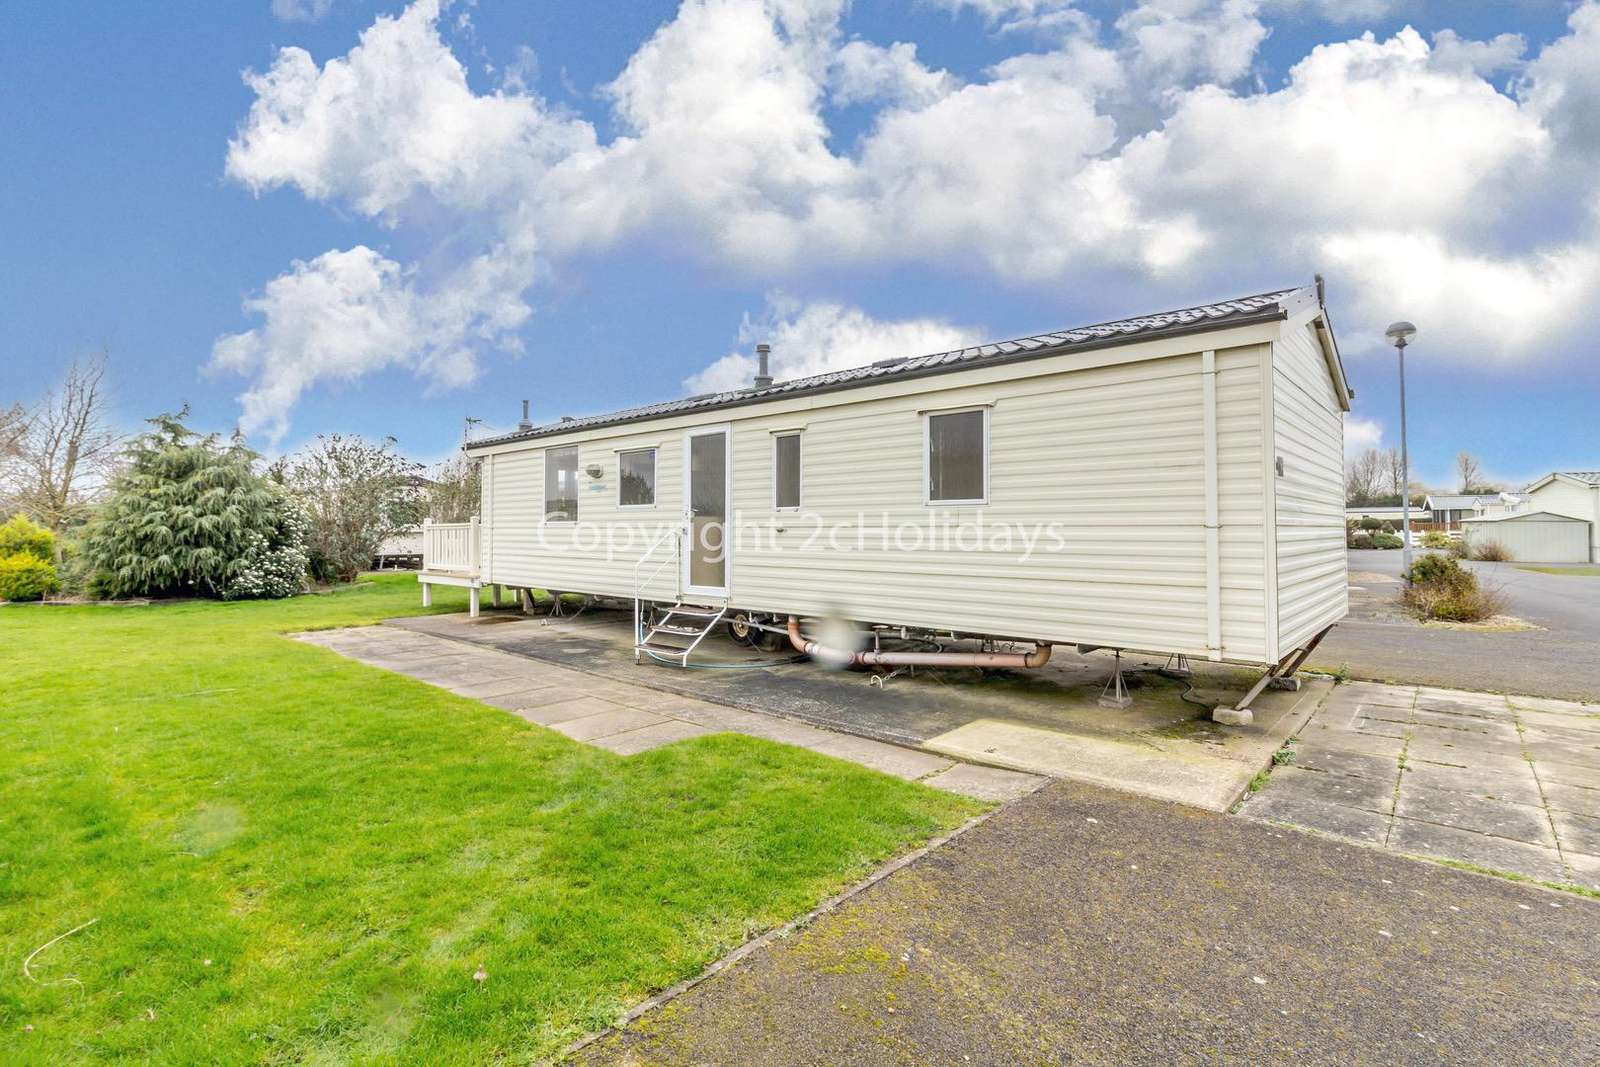 Sited on a brilliant family park with excellent amenities for children.